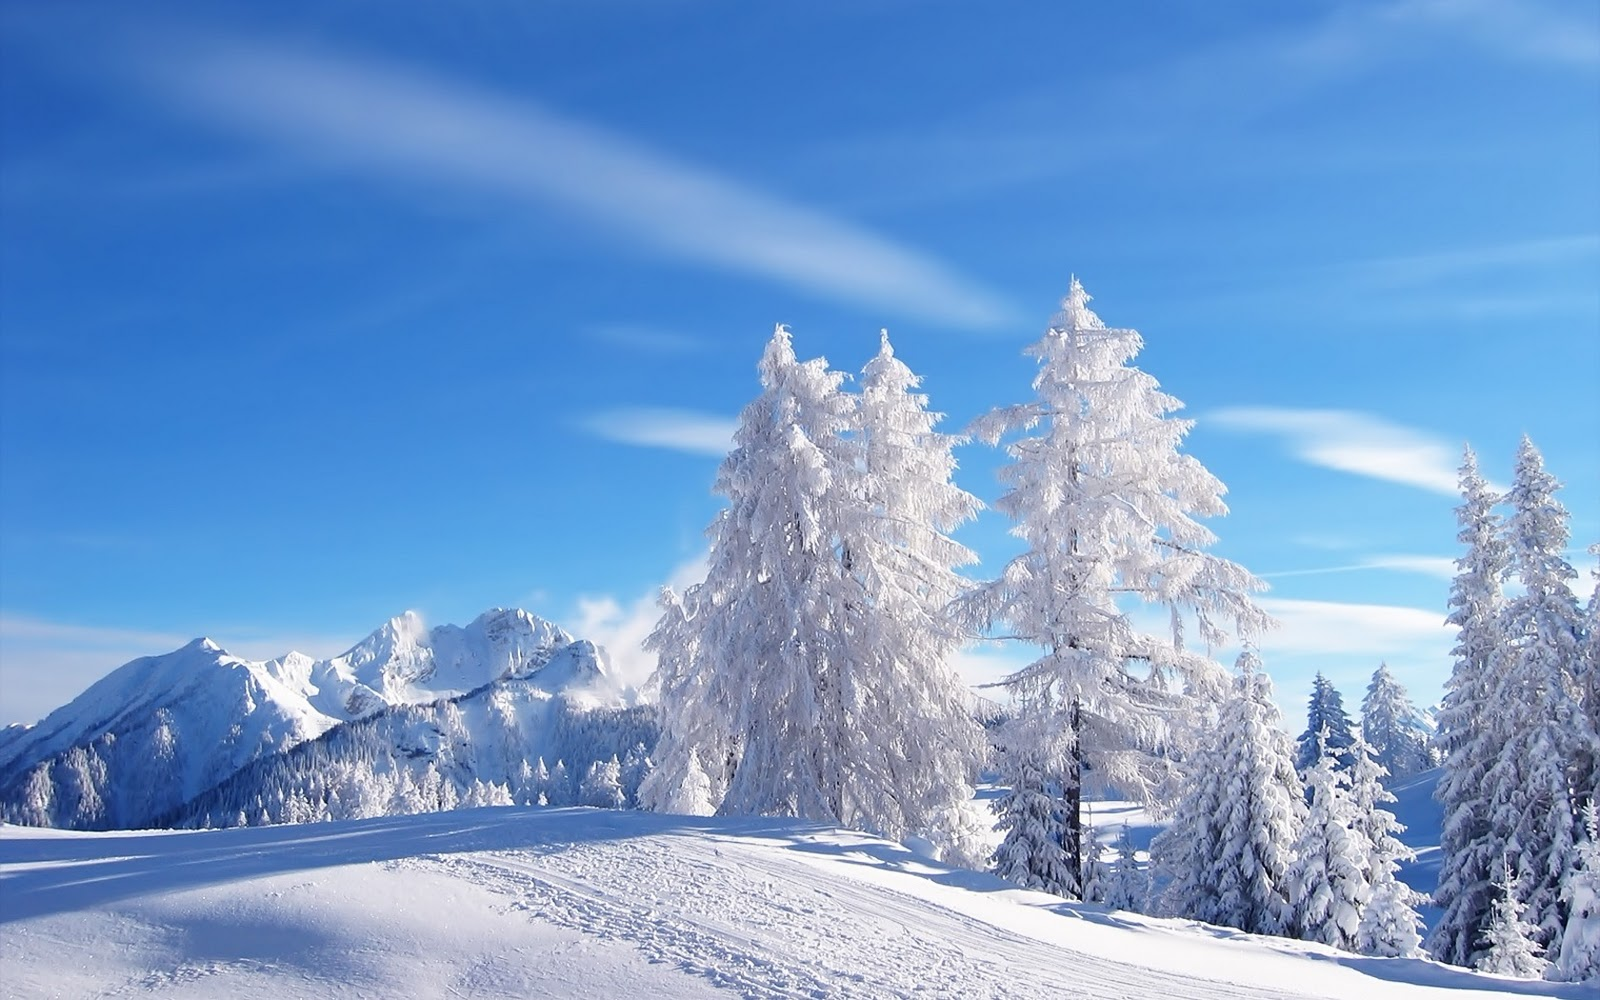 Winter Scenery PowerPoint Background  4 1600x1000